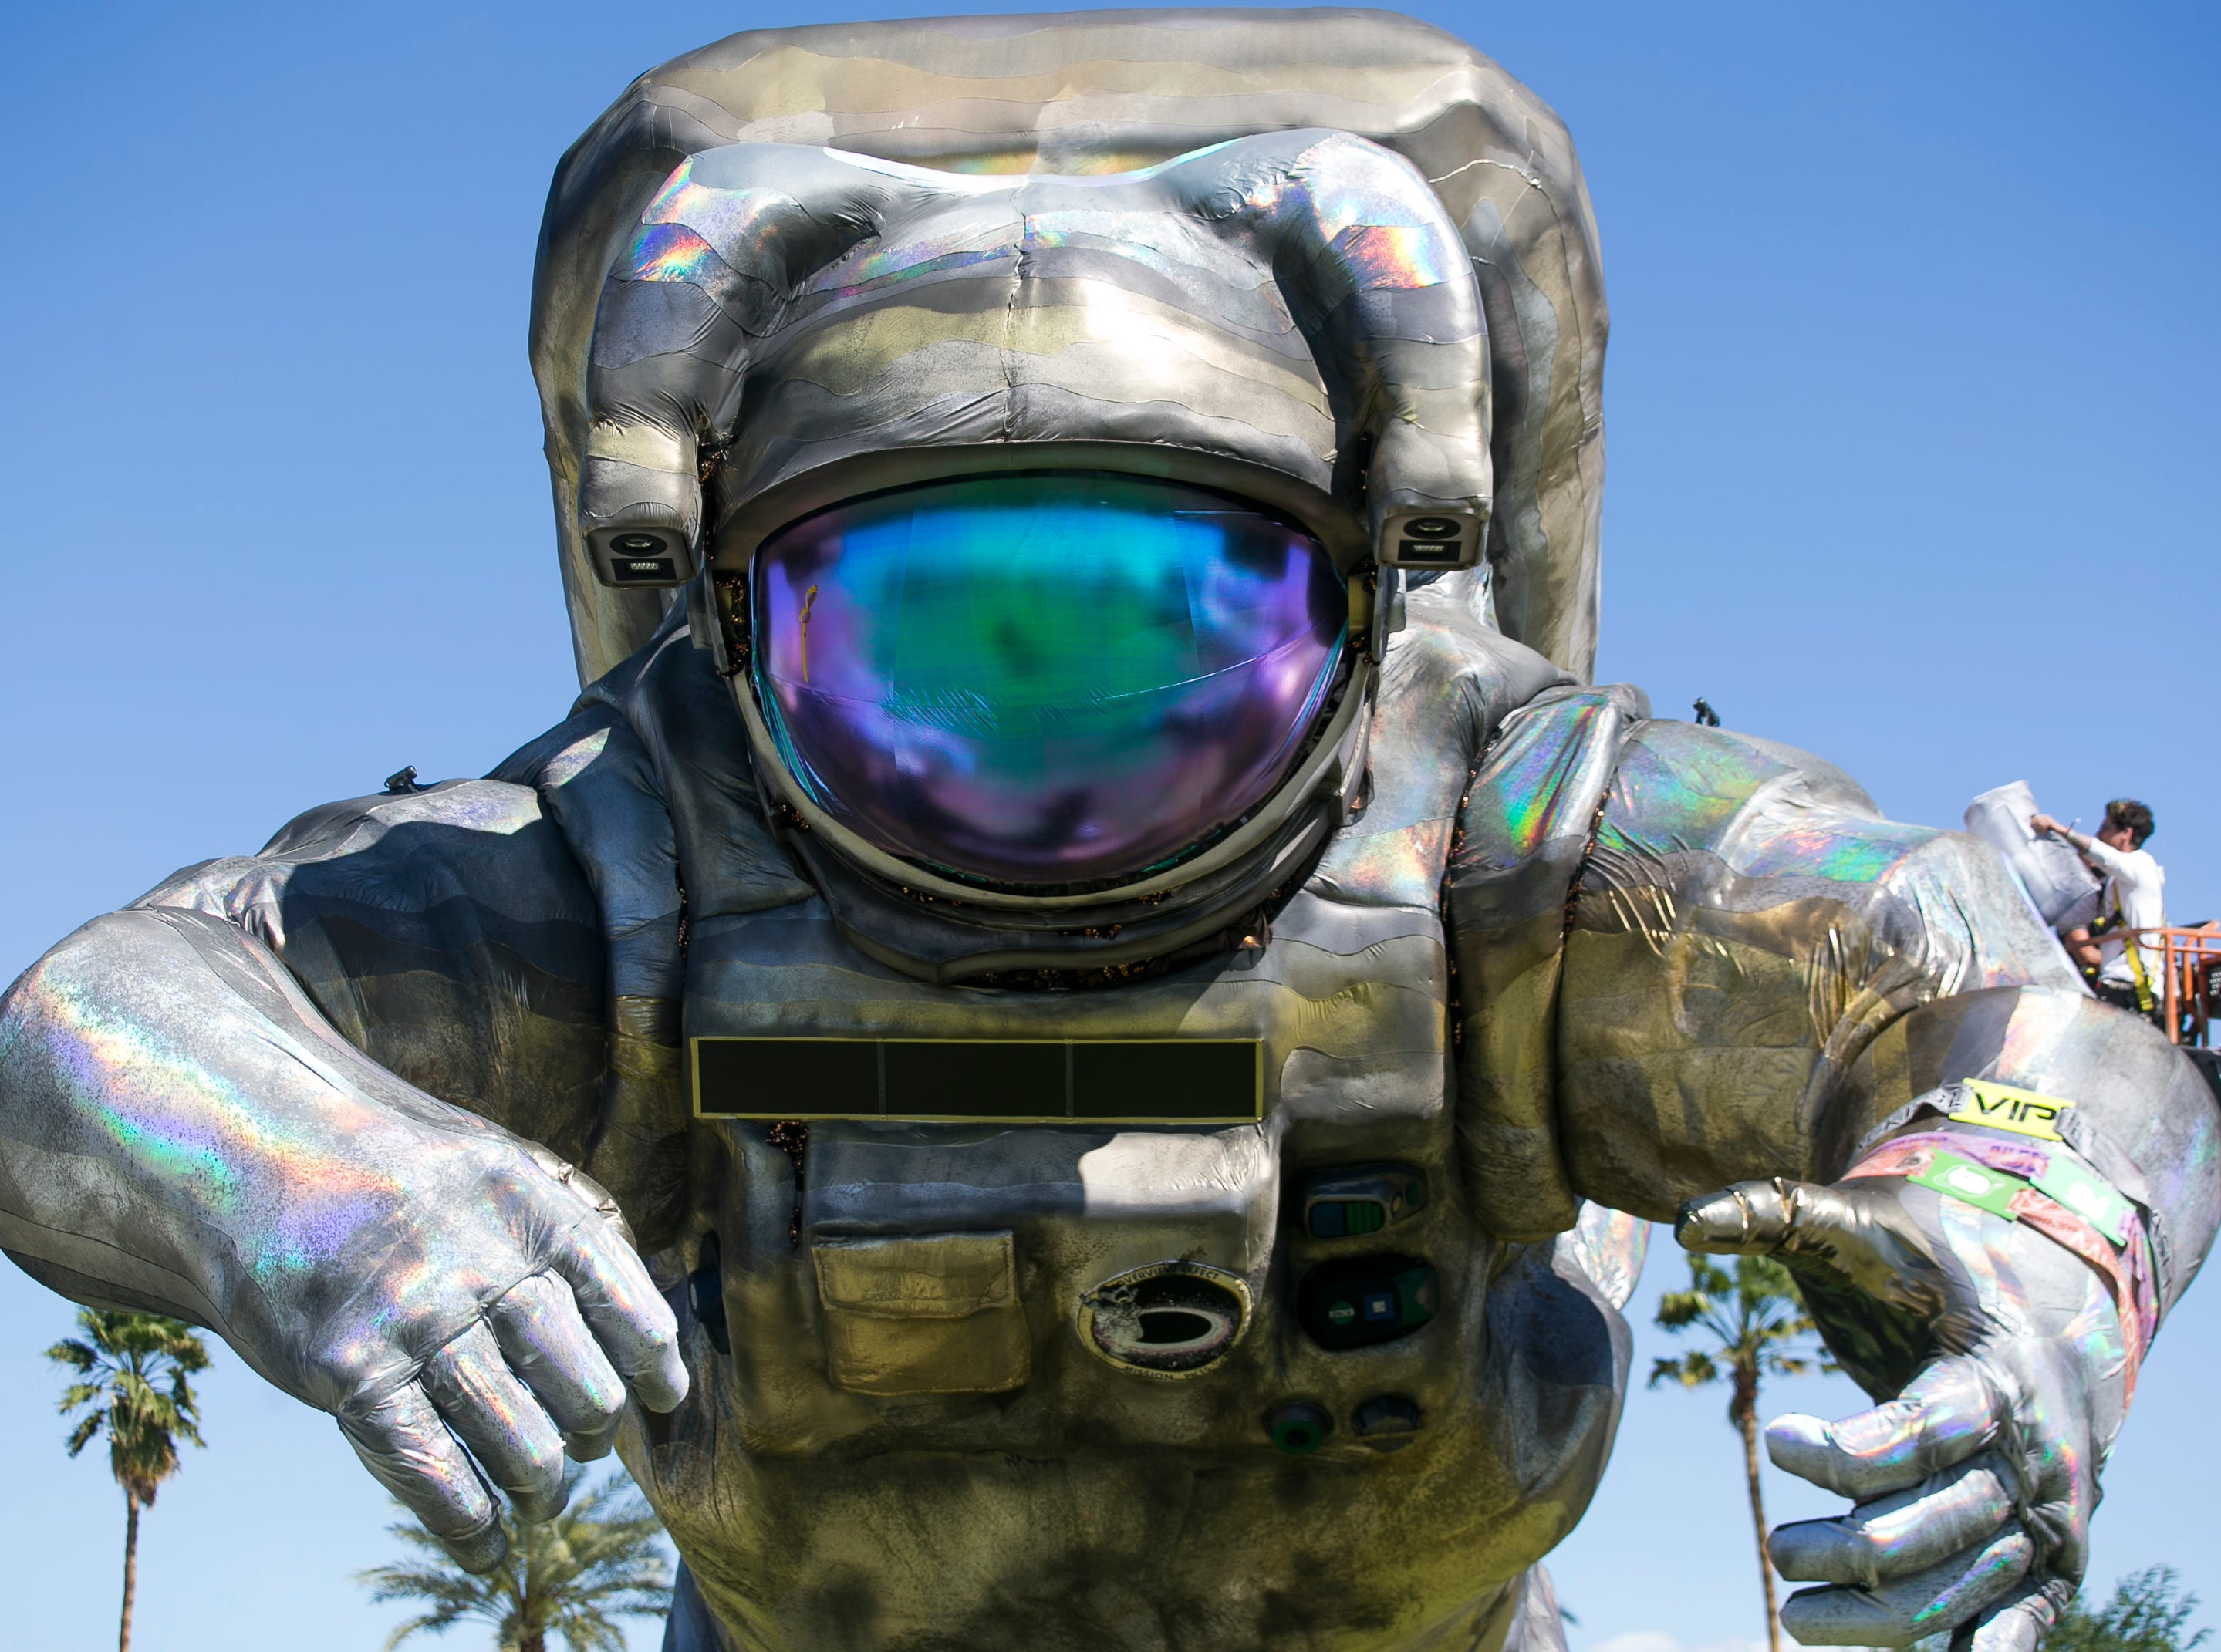 """Art installation the """"Overview Effect"""" astronaut by Poetic Kinetics looms at the Coachella Valley Music and Arts Festival in Indio, California, on April 12, 2019."""